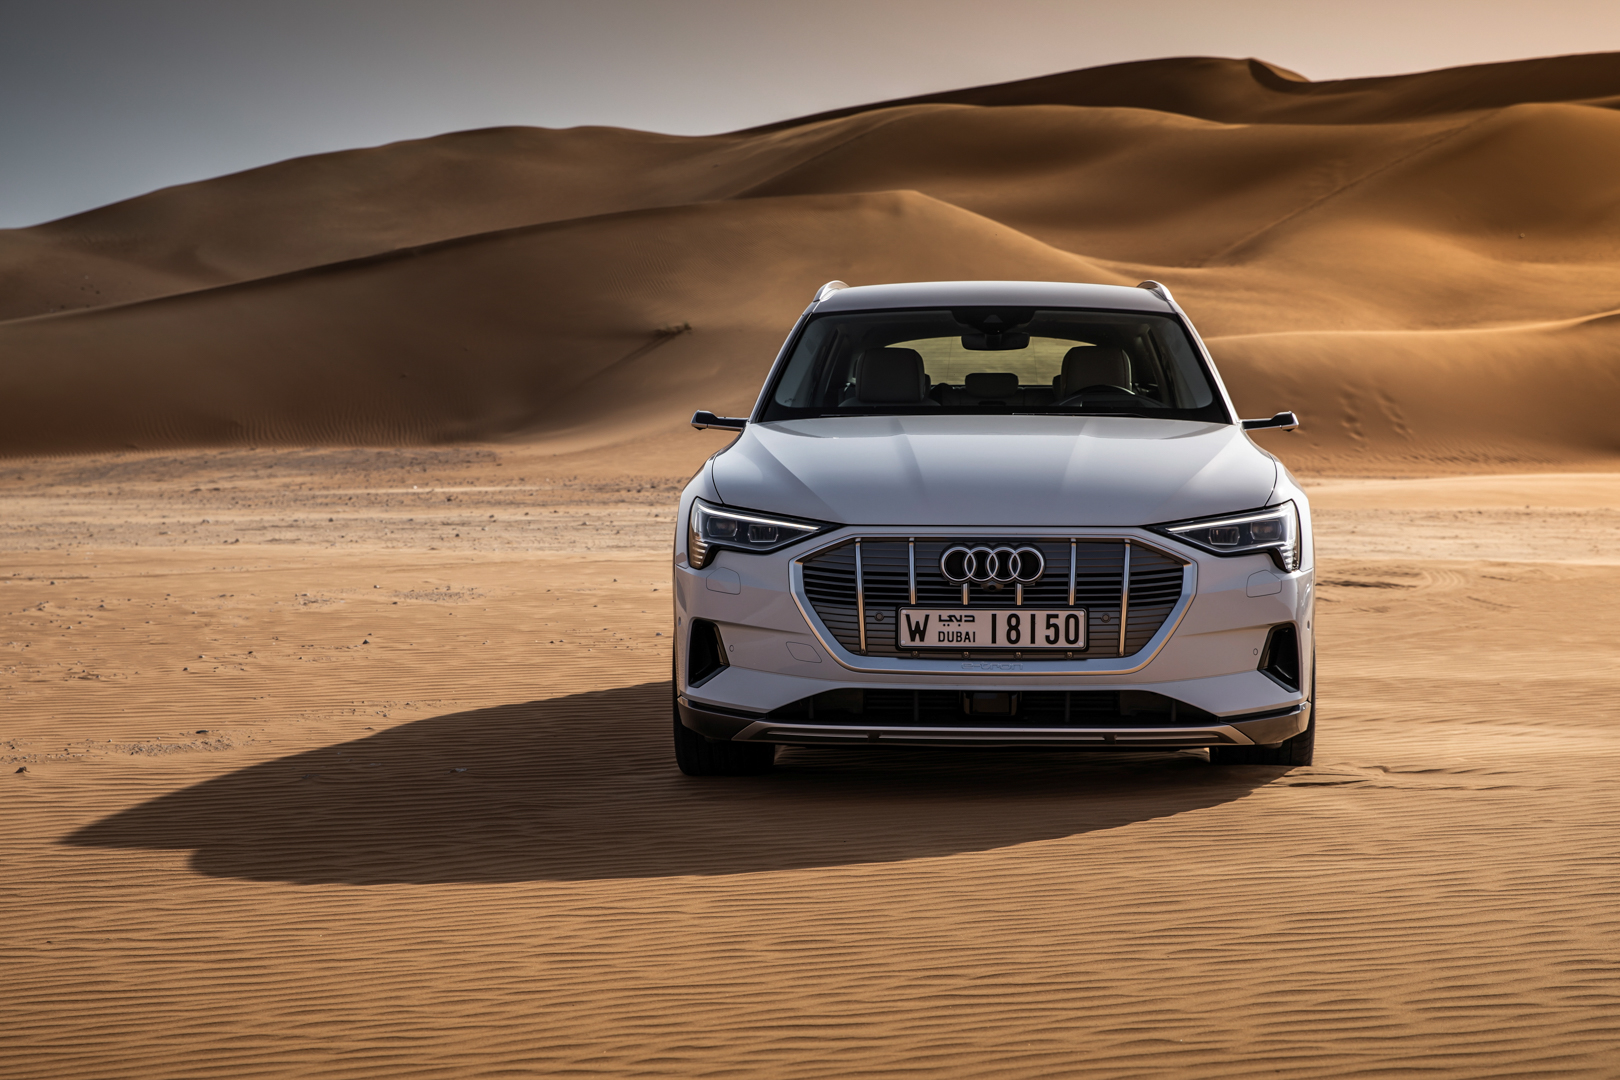 Carfection drives the Audi e-tron